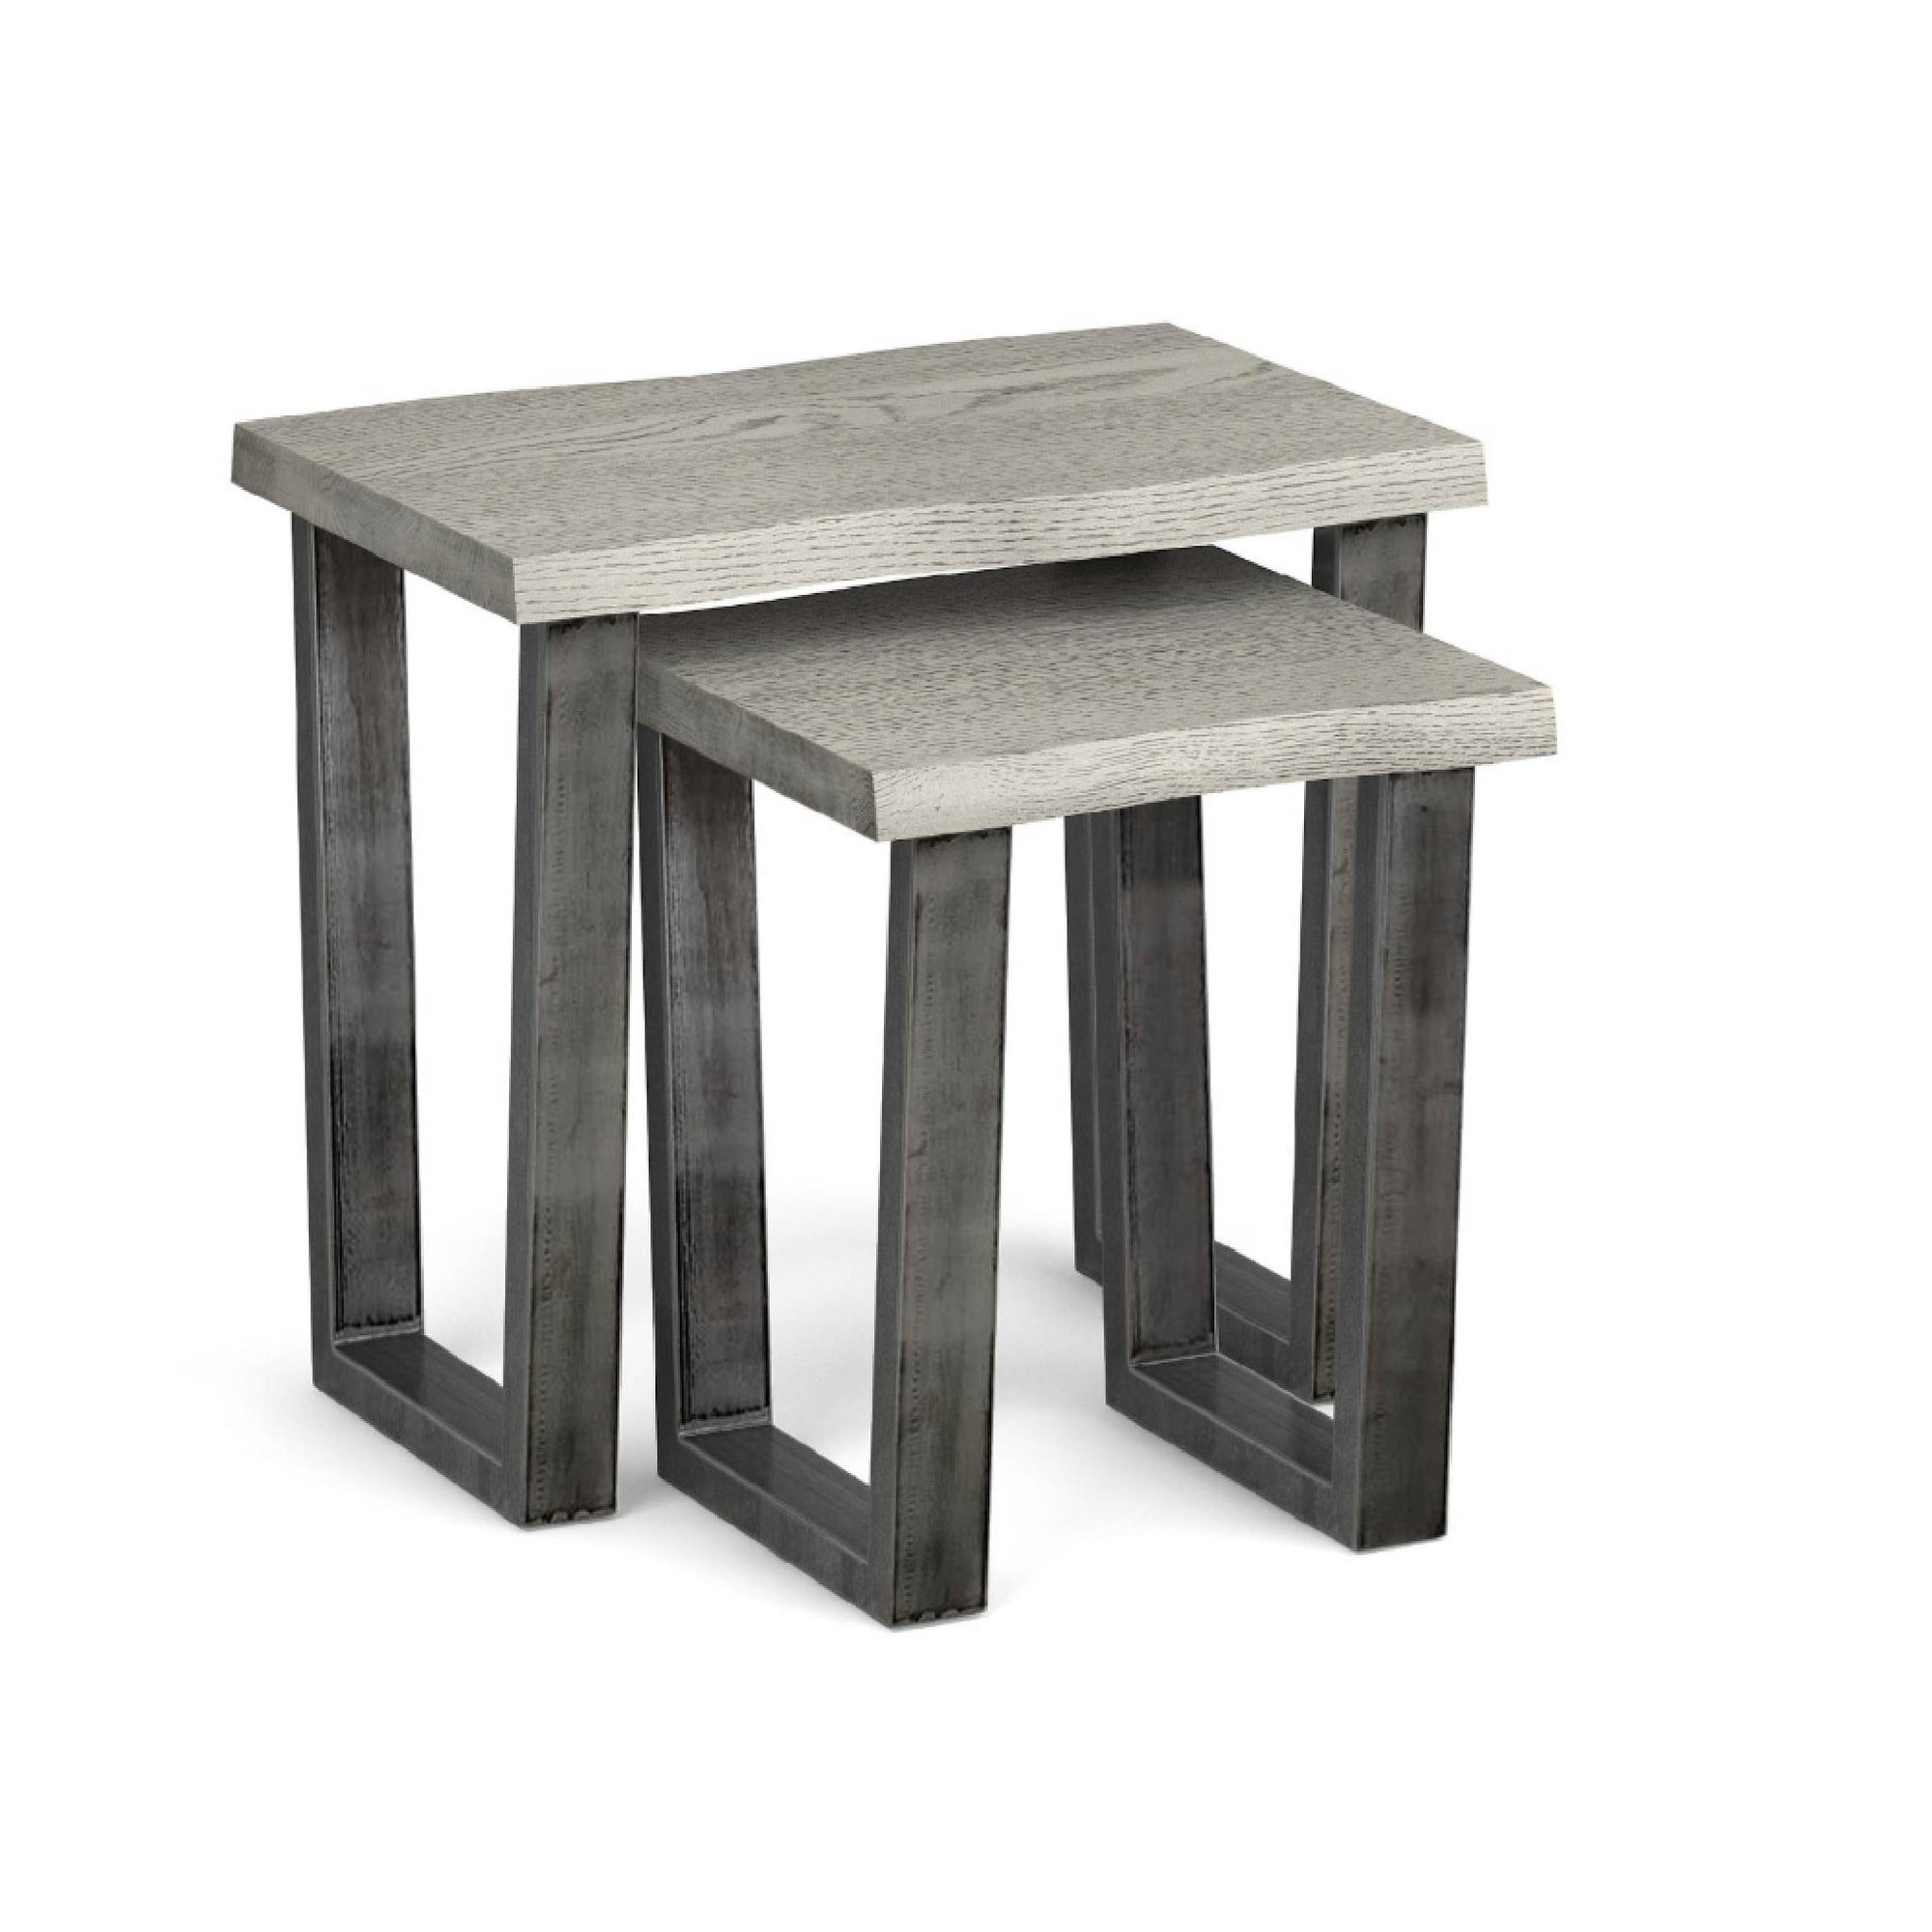 The Soho Grey Industrial Wood & Metal Nest of Tables from Roseland Furniture